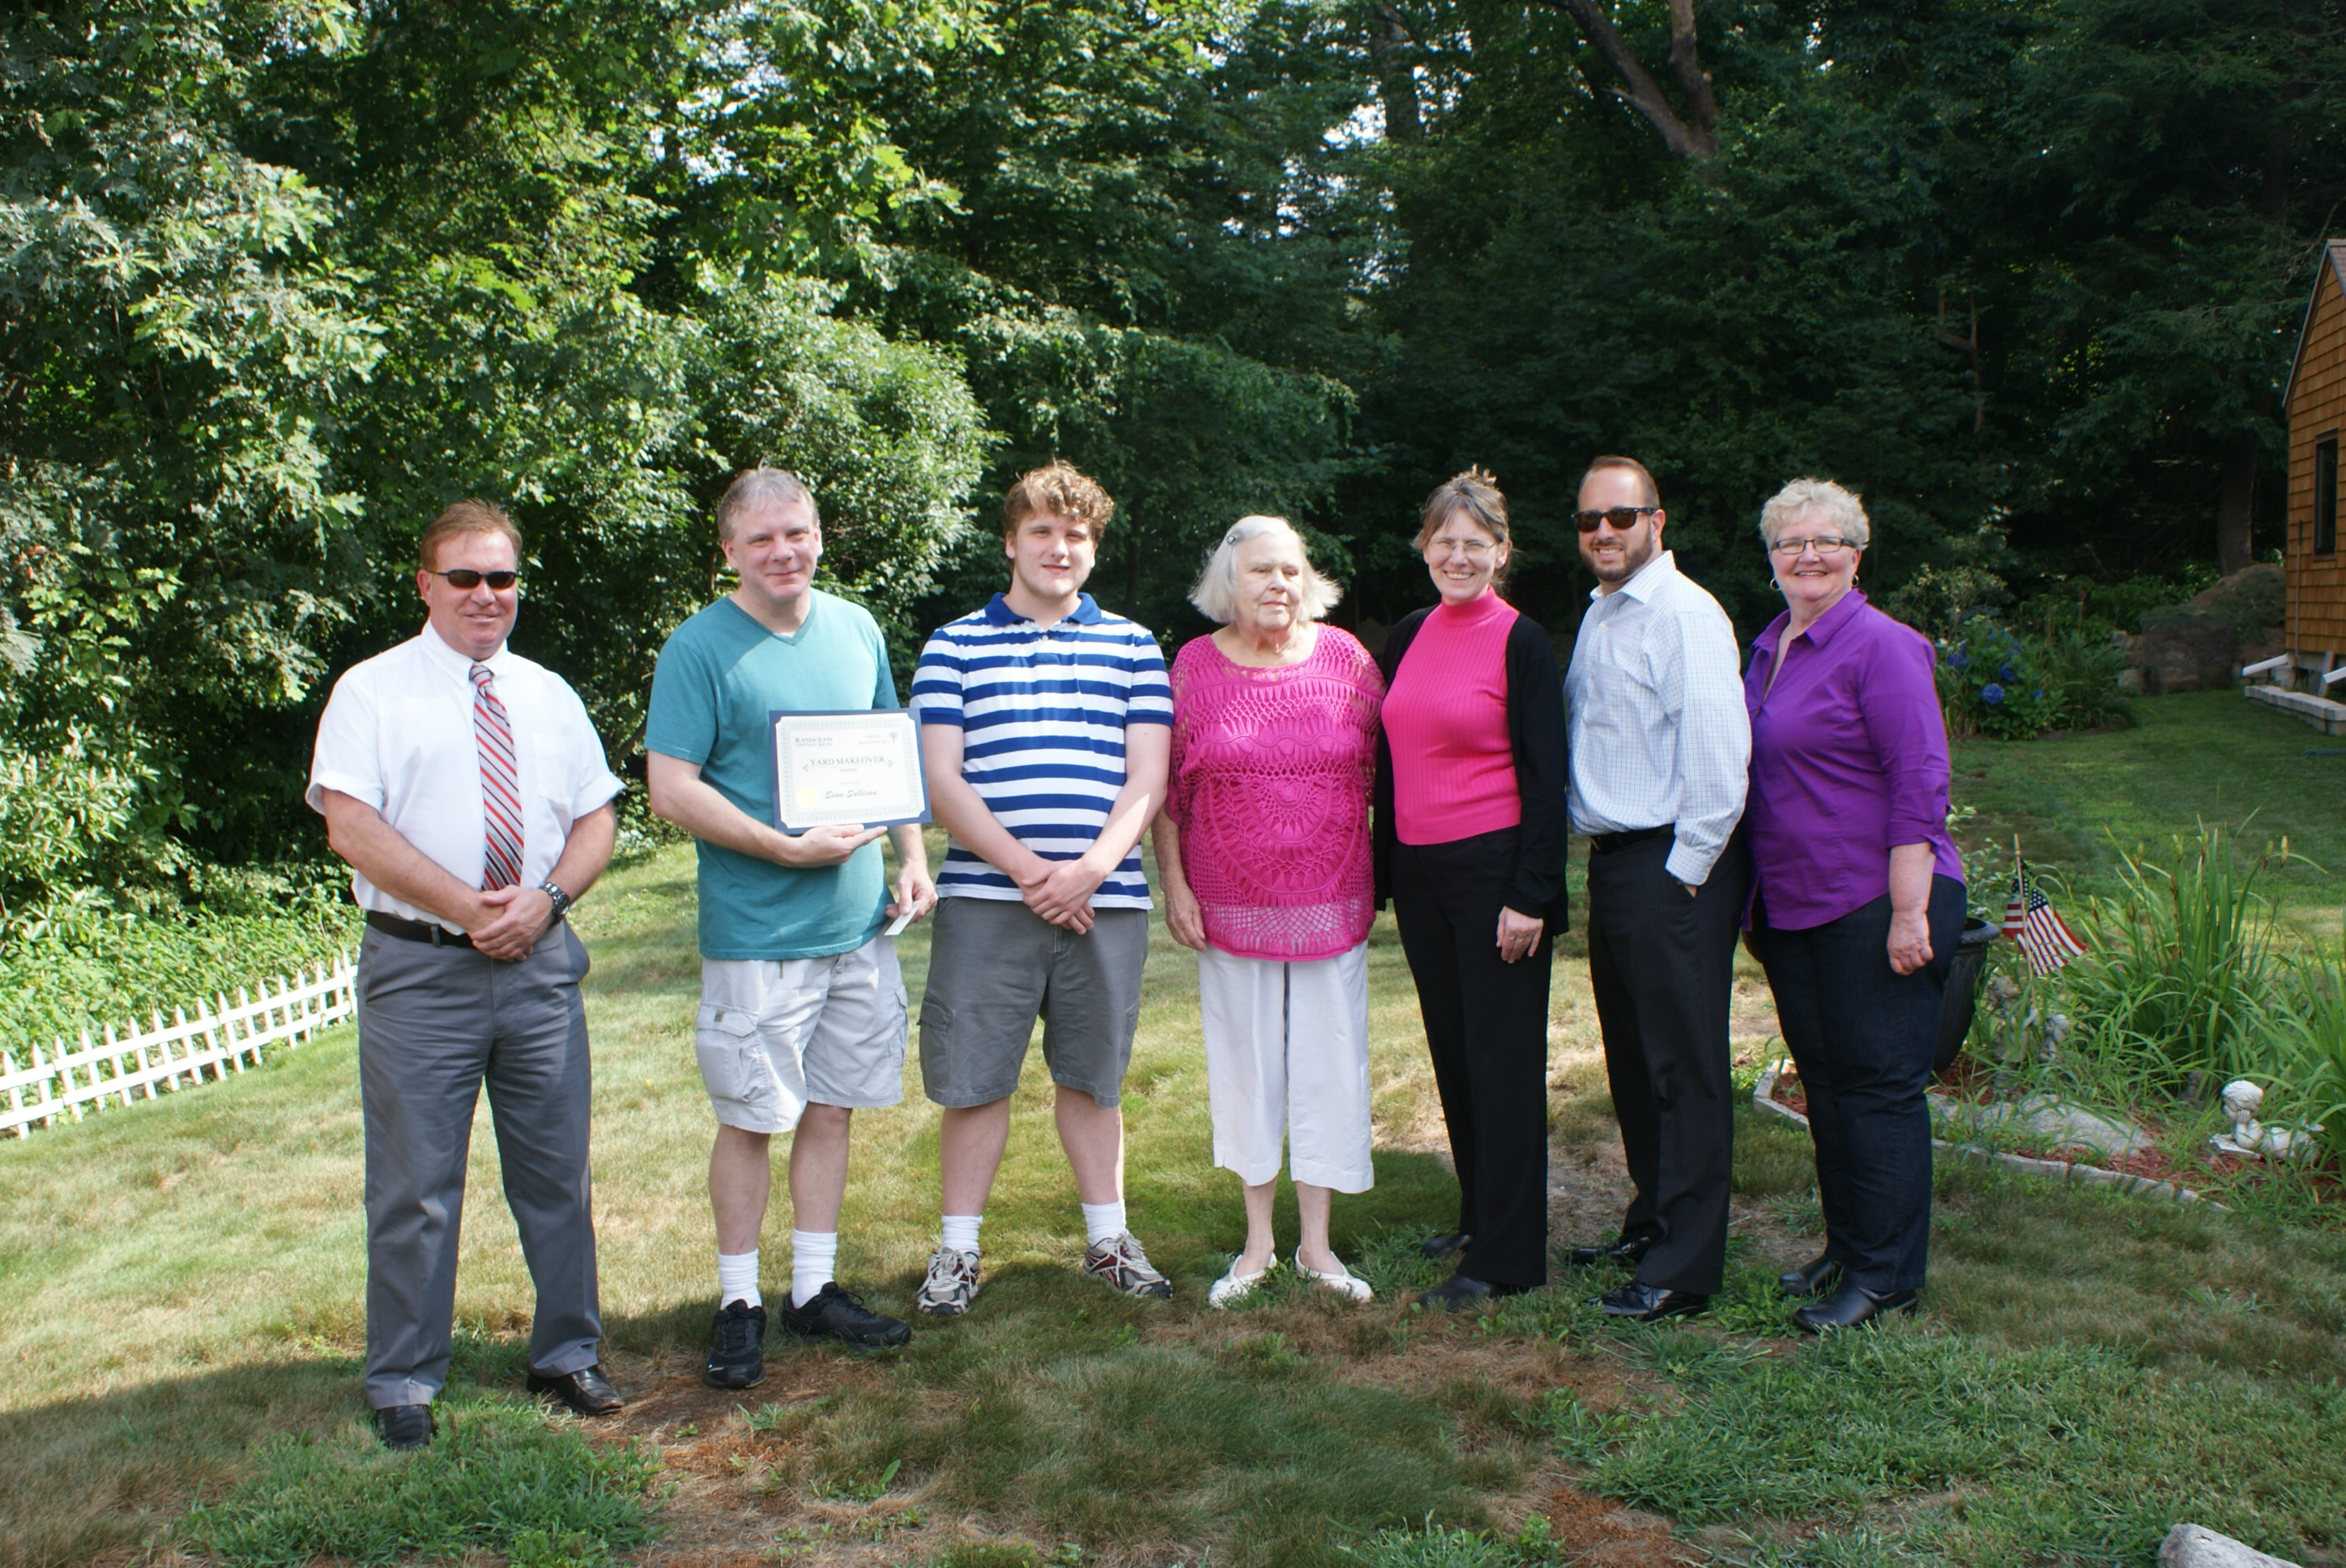 Randolph Savings Bank Presents Certificate to Mortgage Campaign Winner